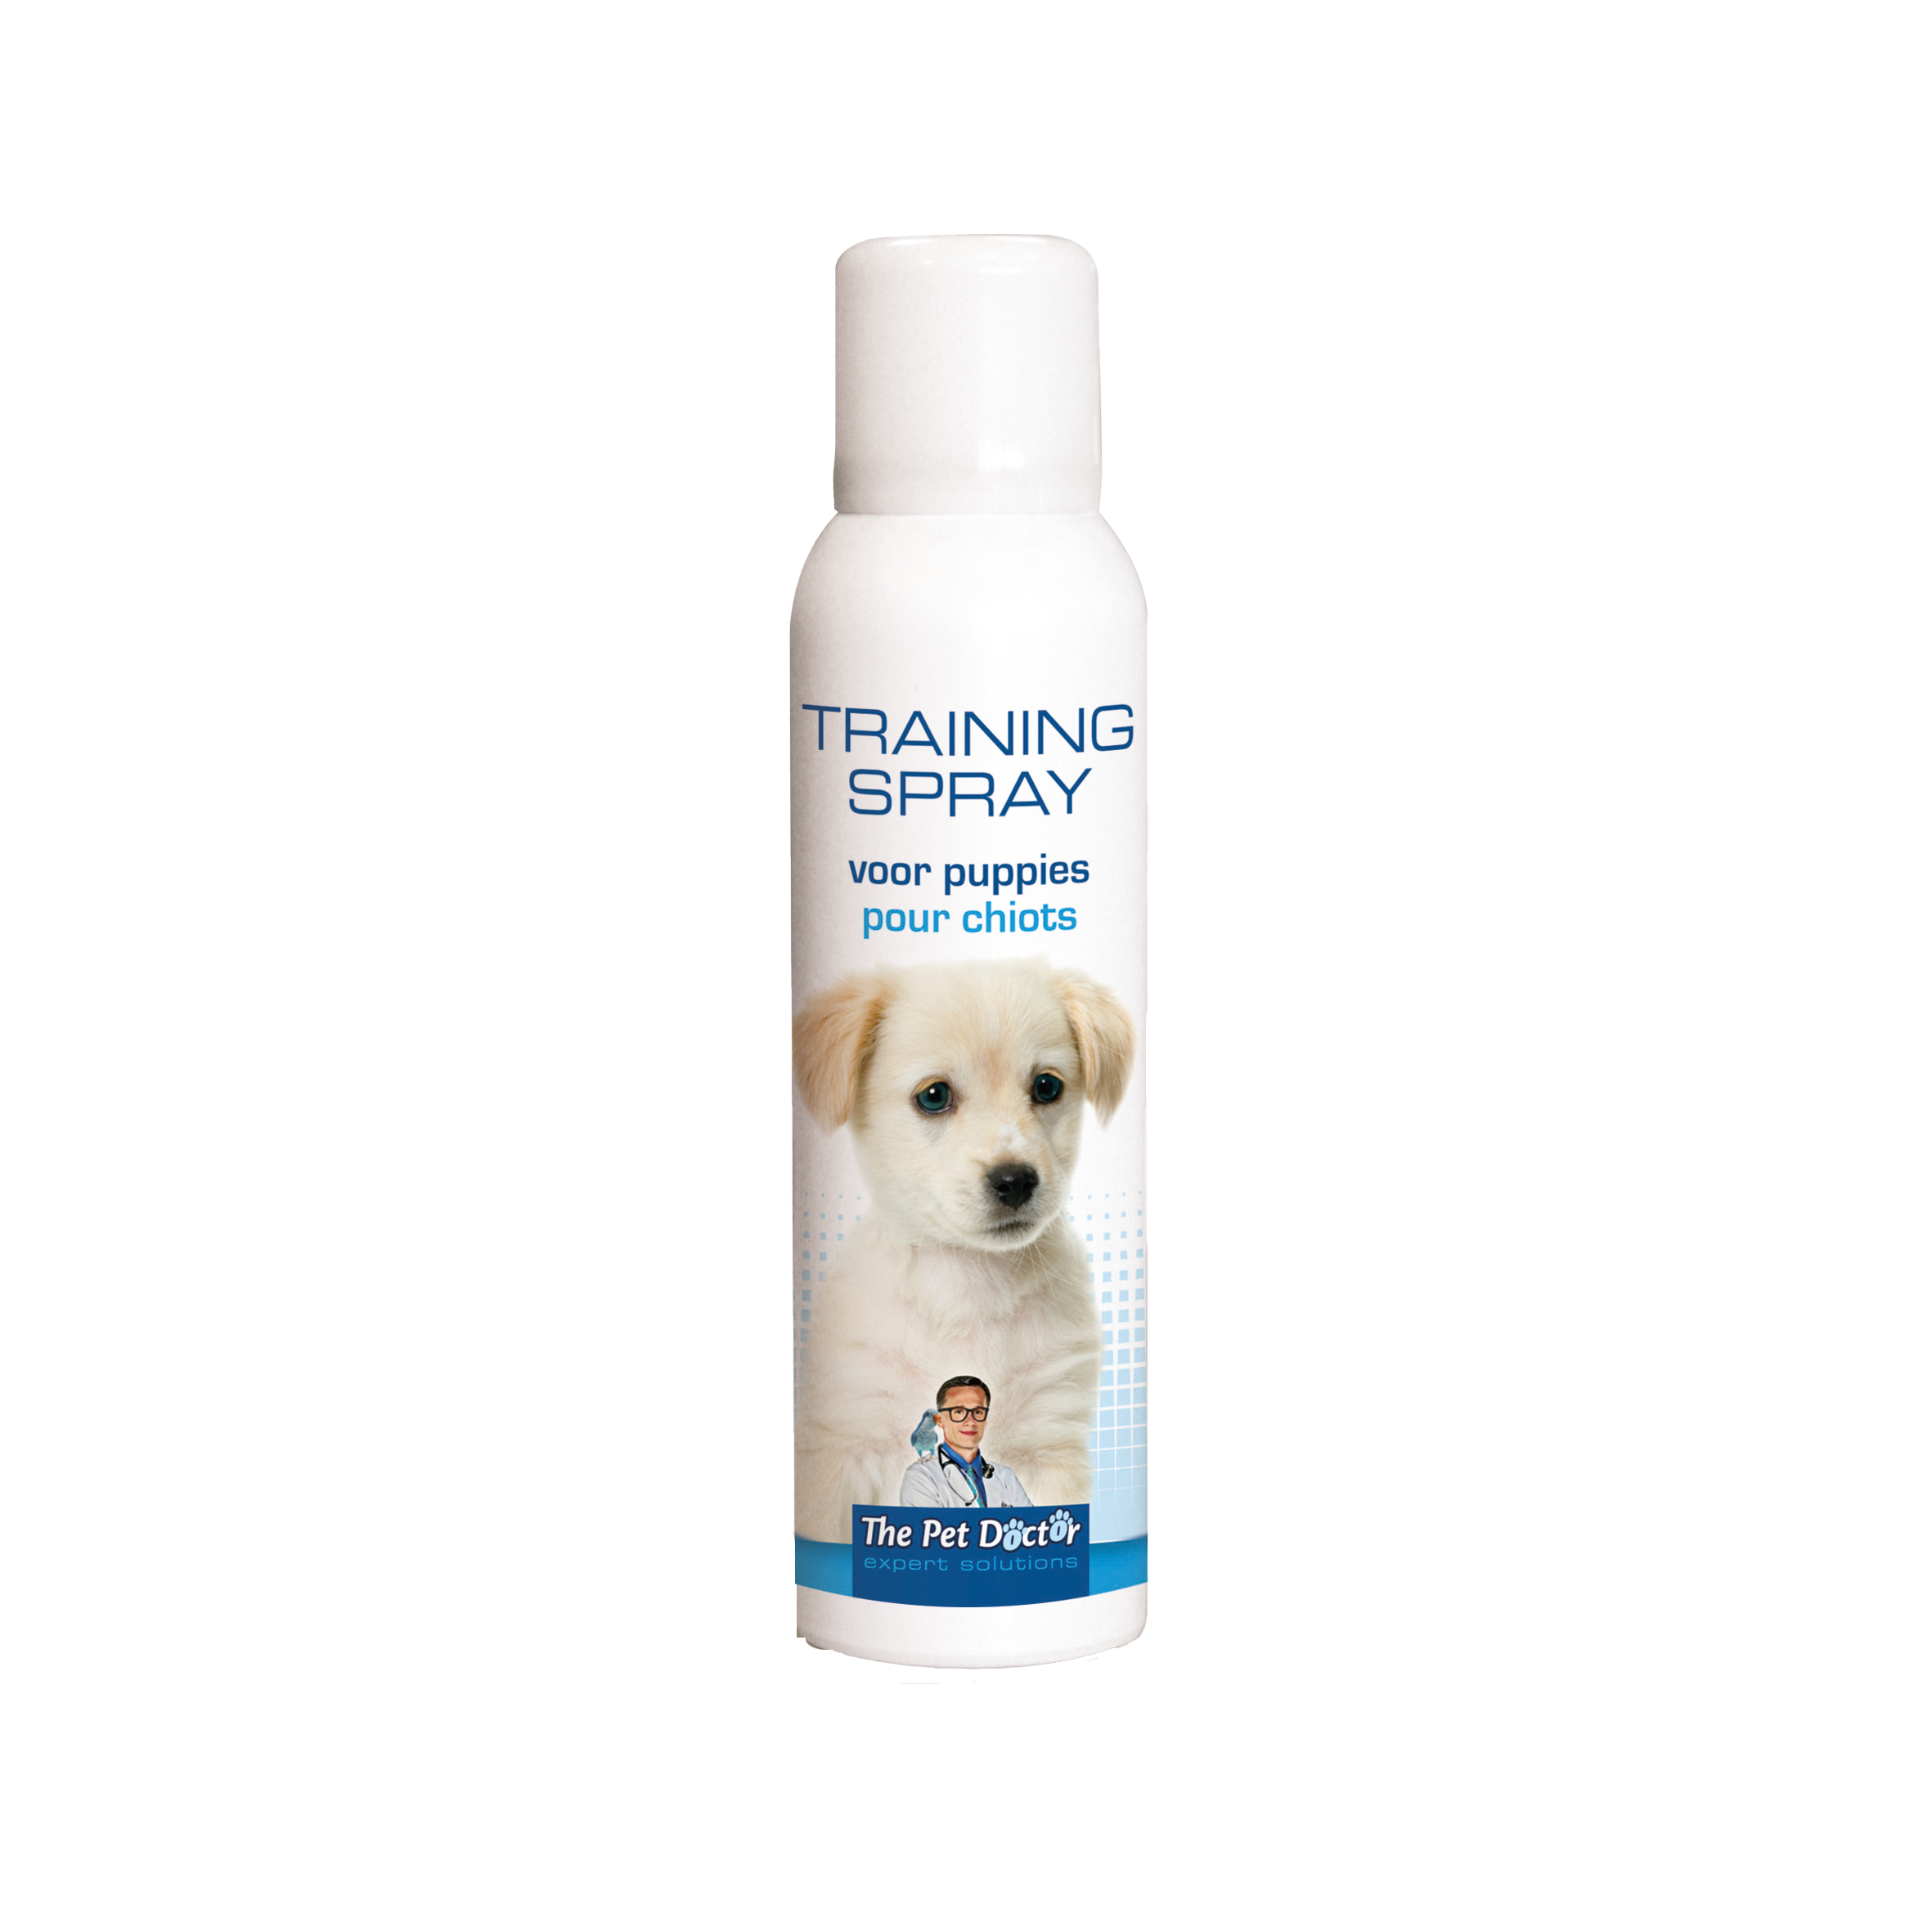 The Pet Doctor Training Spray Puppies 120 ml image